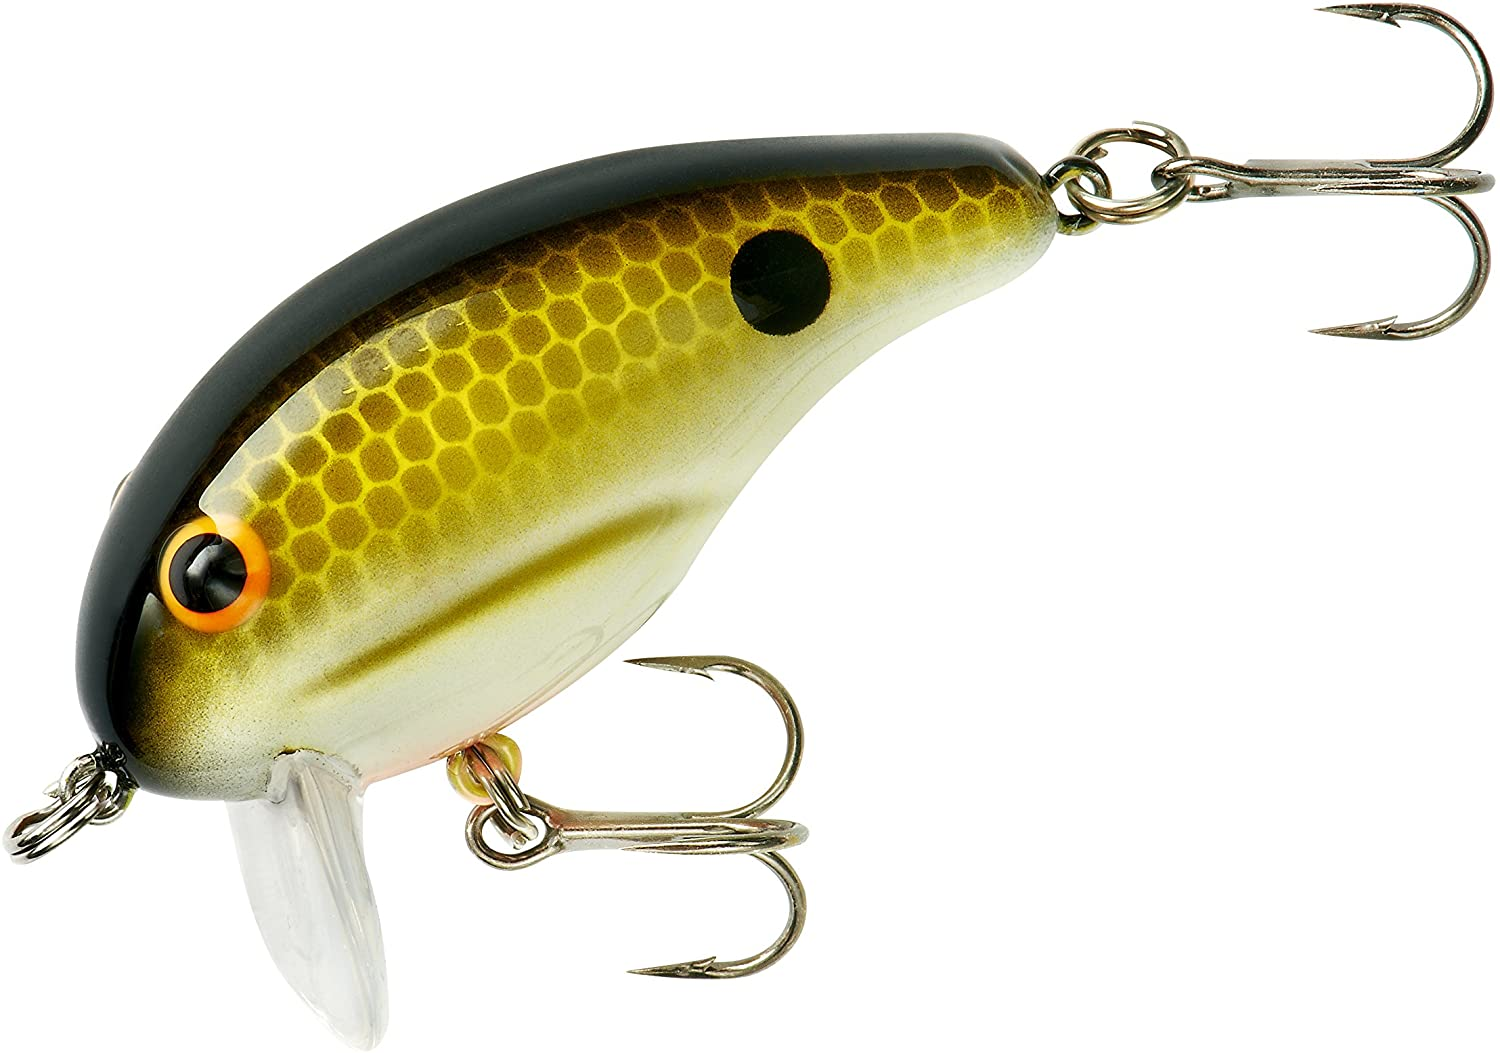 Bandit Foot-Loose Super-Shallow Crankbait Fishing Lure, 2 Inch, 1/4 Ounce